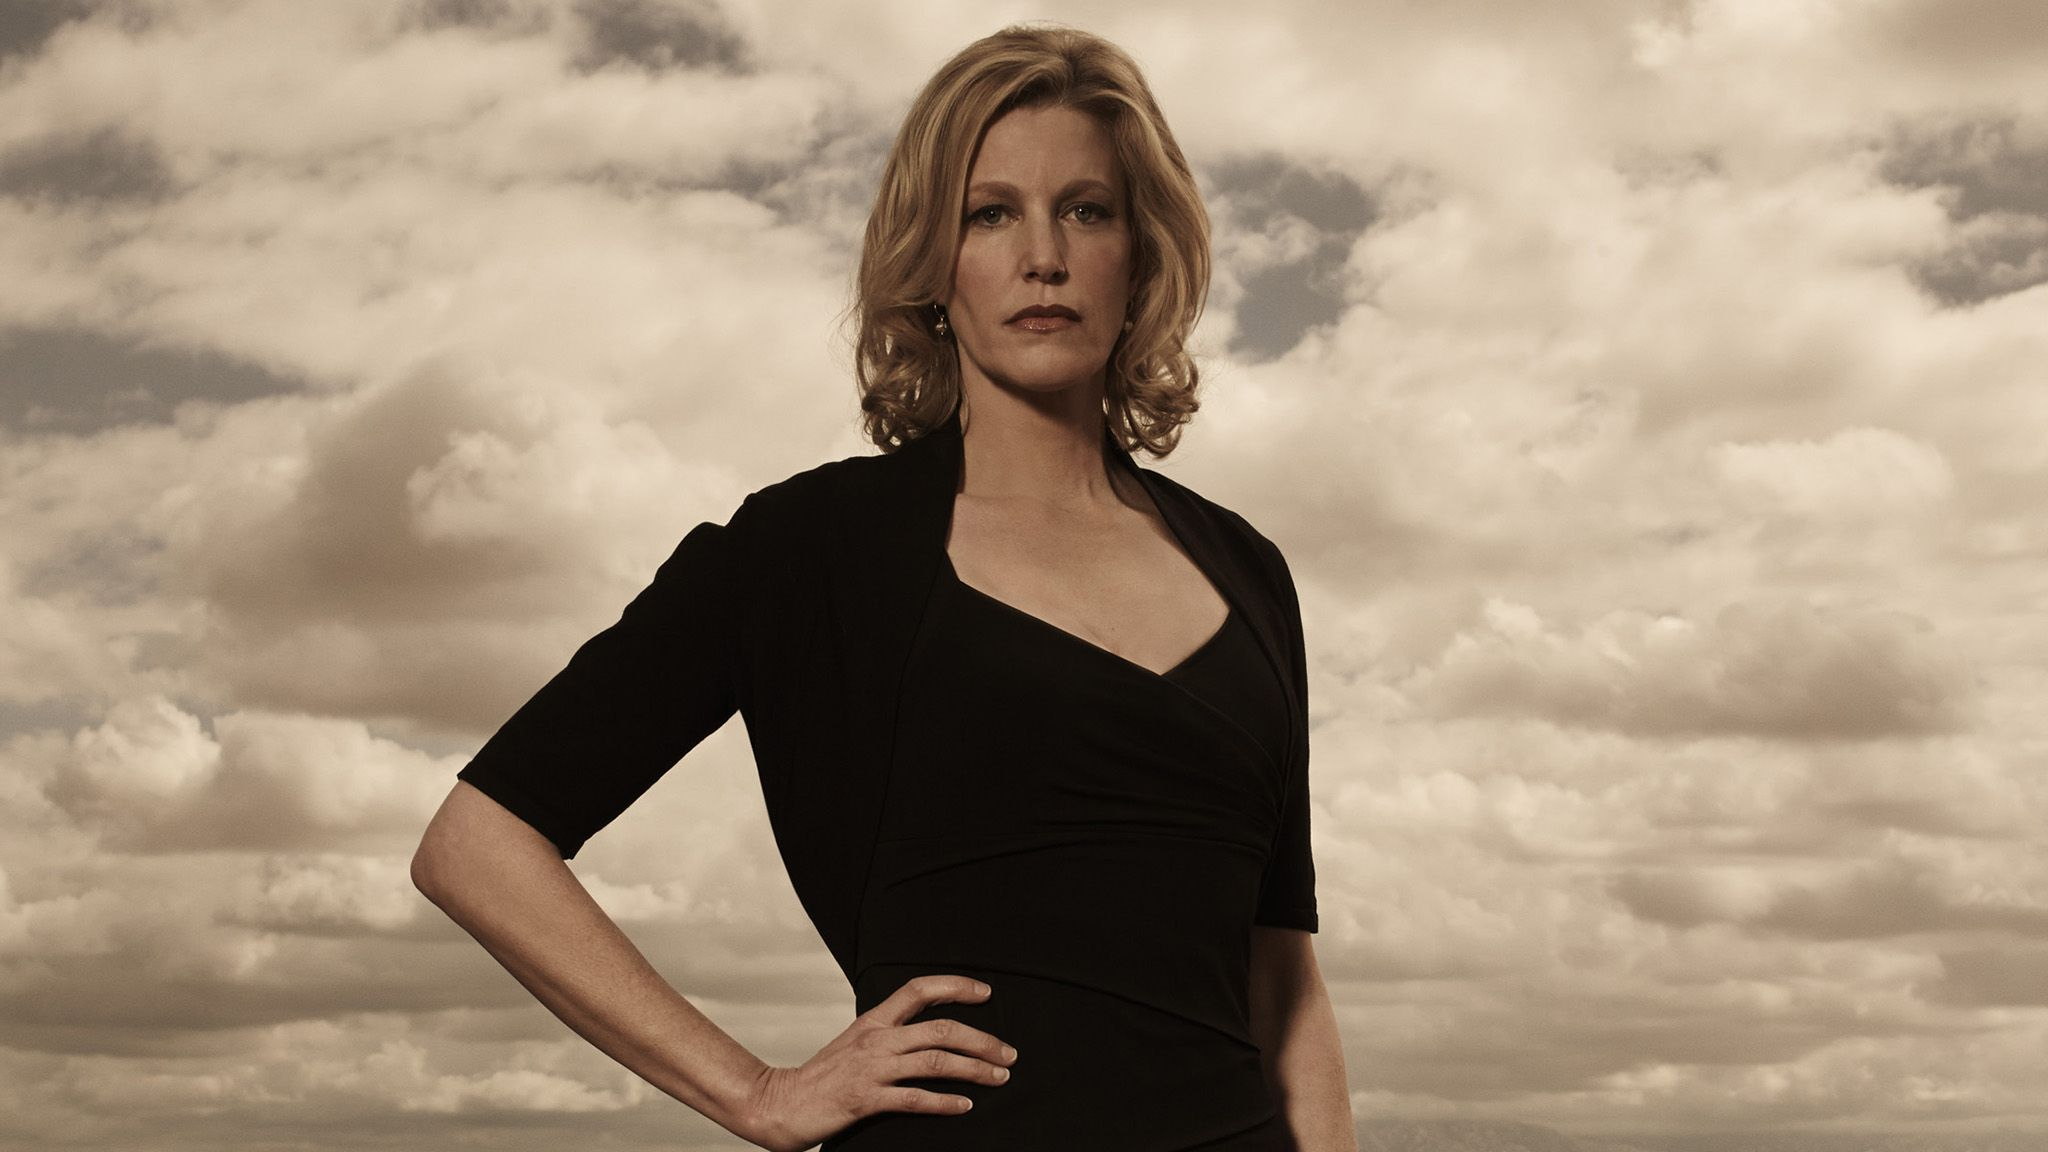 Skyler White - breaking Bad